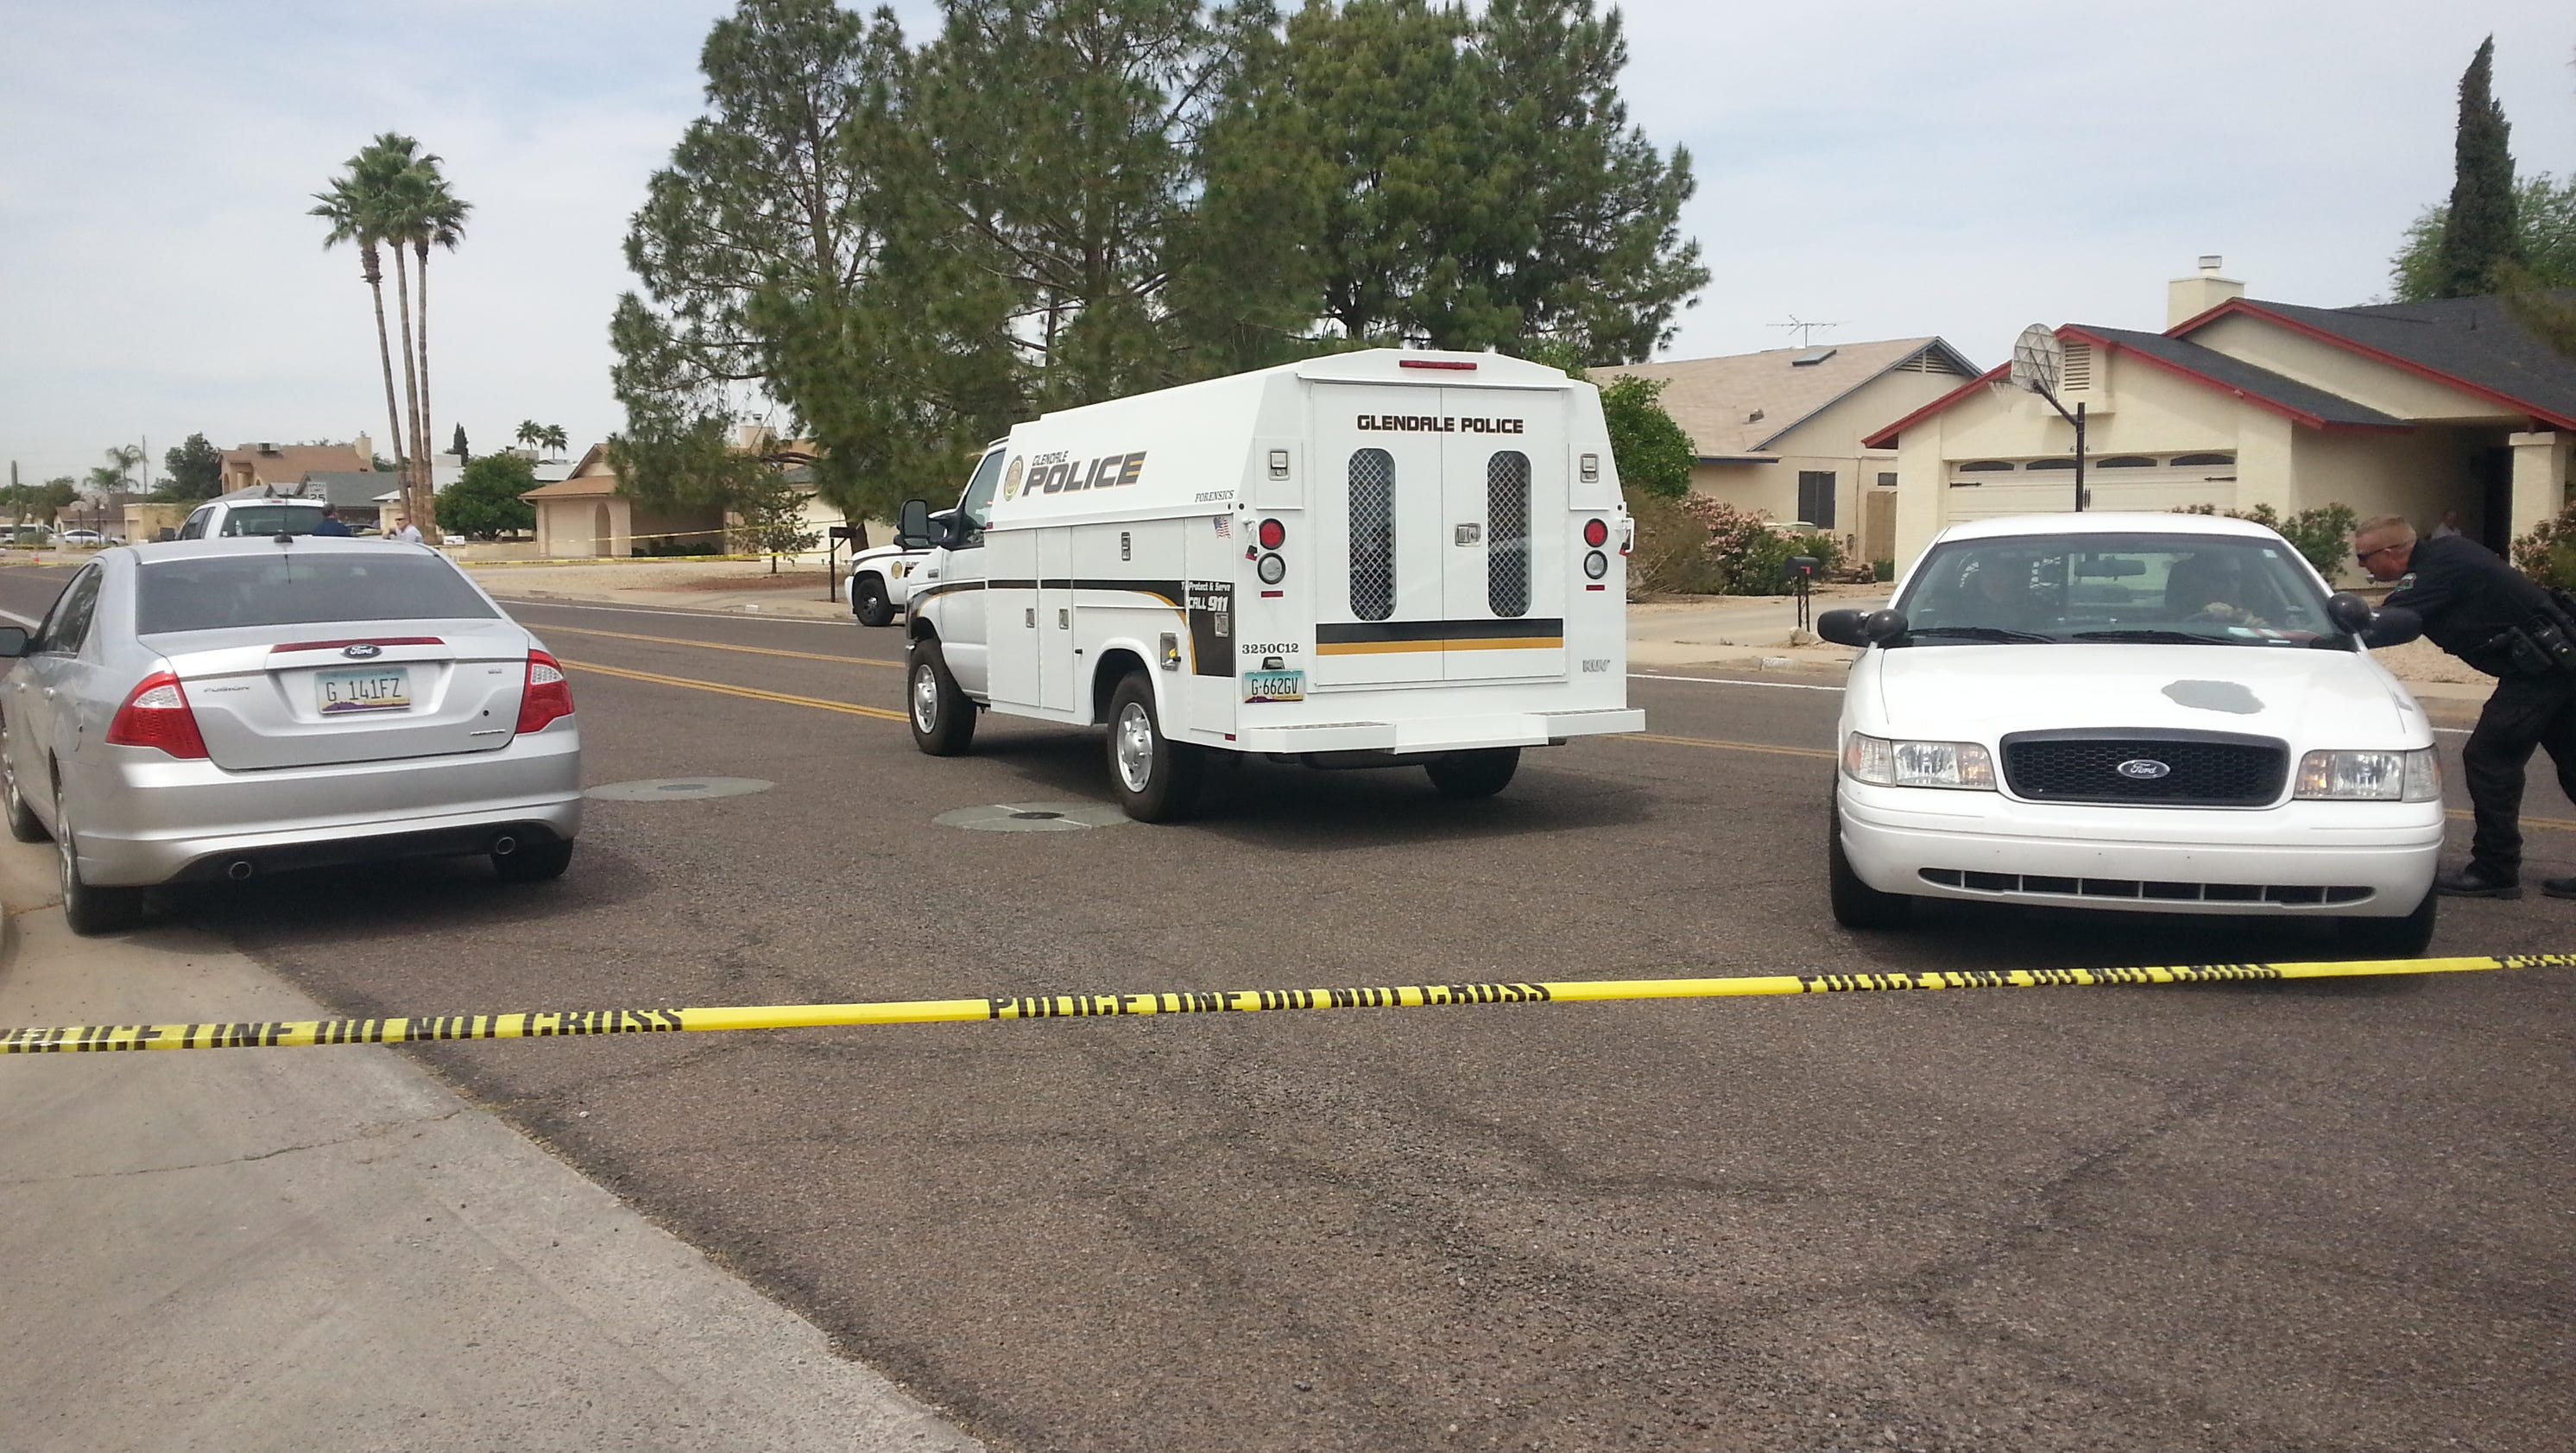 Police Peoria Man Stabbed By Unknown Assailants In Glendale